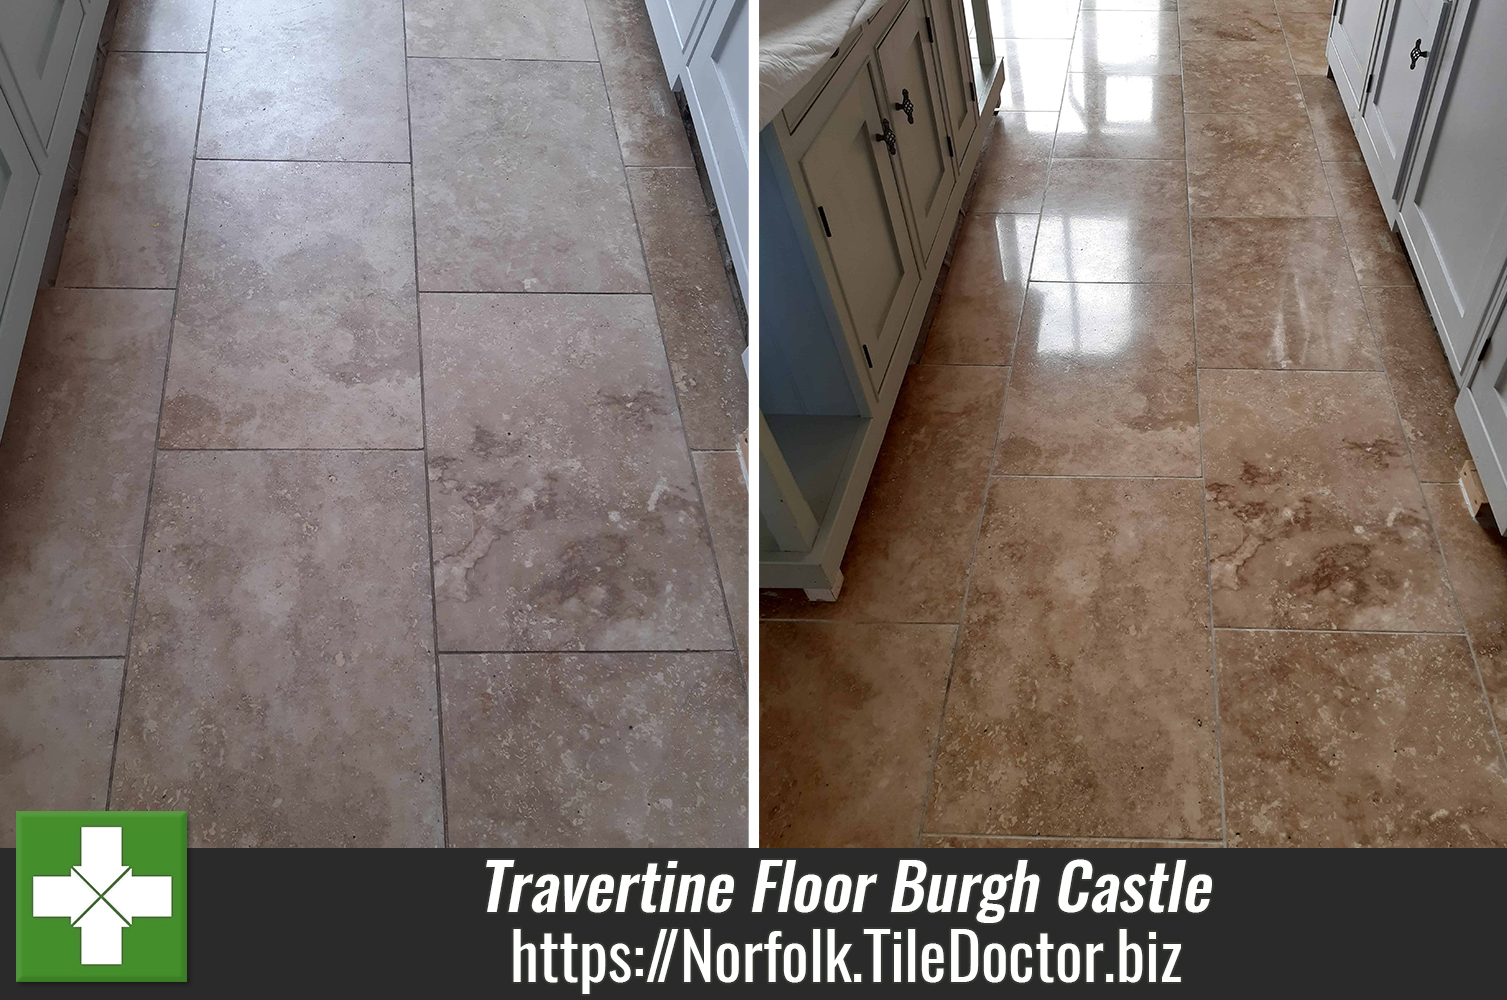 Travertine-Kitchen-Floor-Face-Lift-Burgh-Castle-Great-Yarmouth